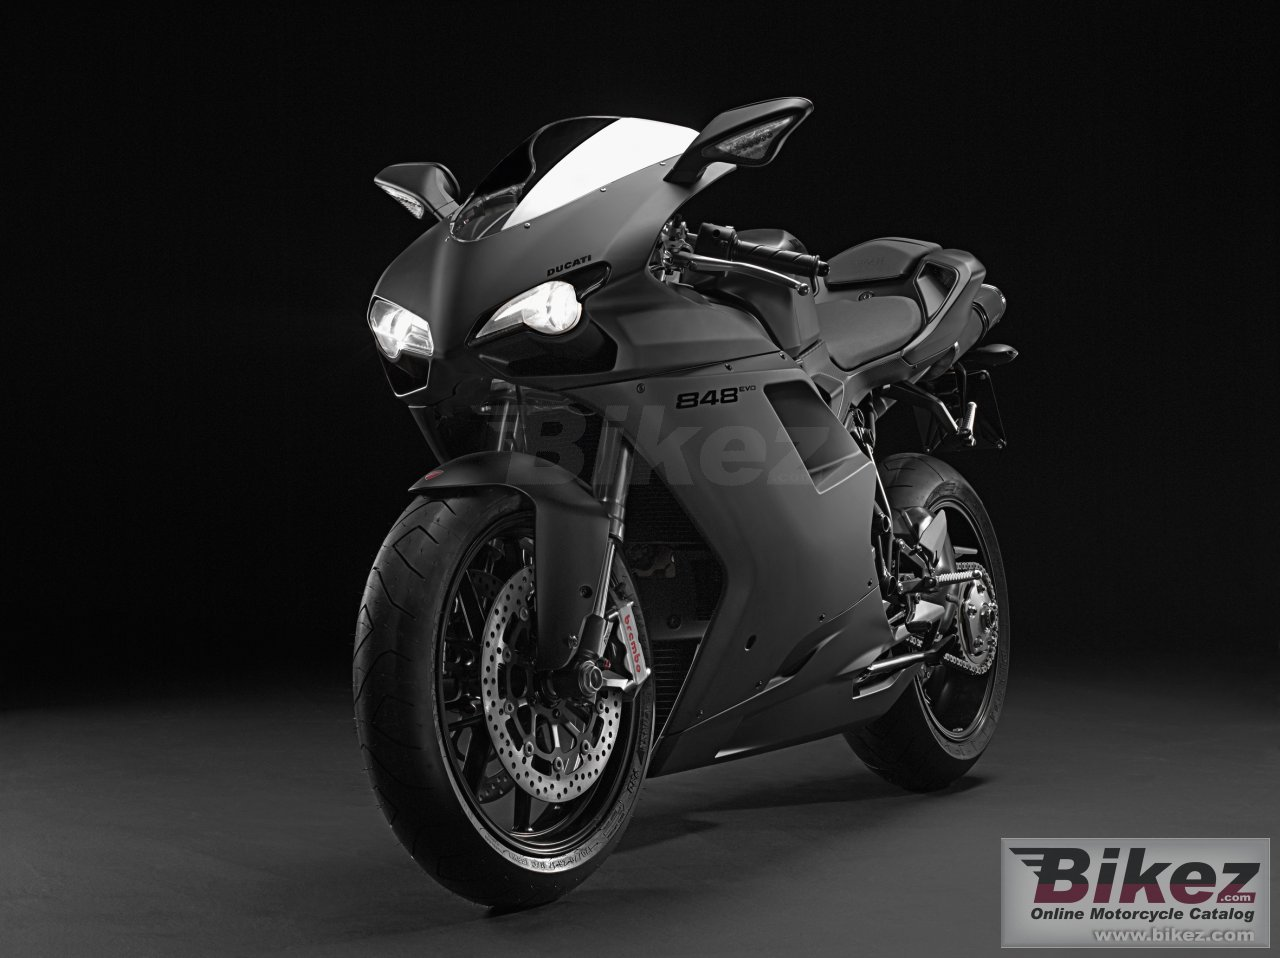 Big Ducati 848 evo dark picture and wallpaper from Bikez.com